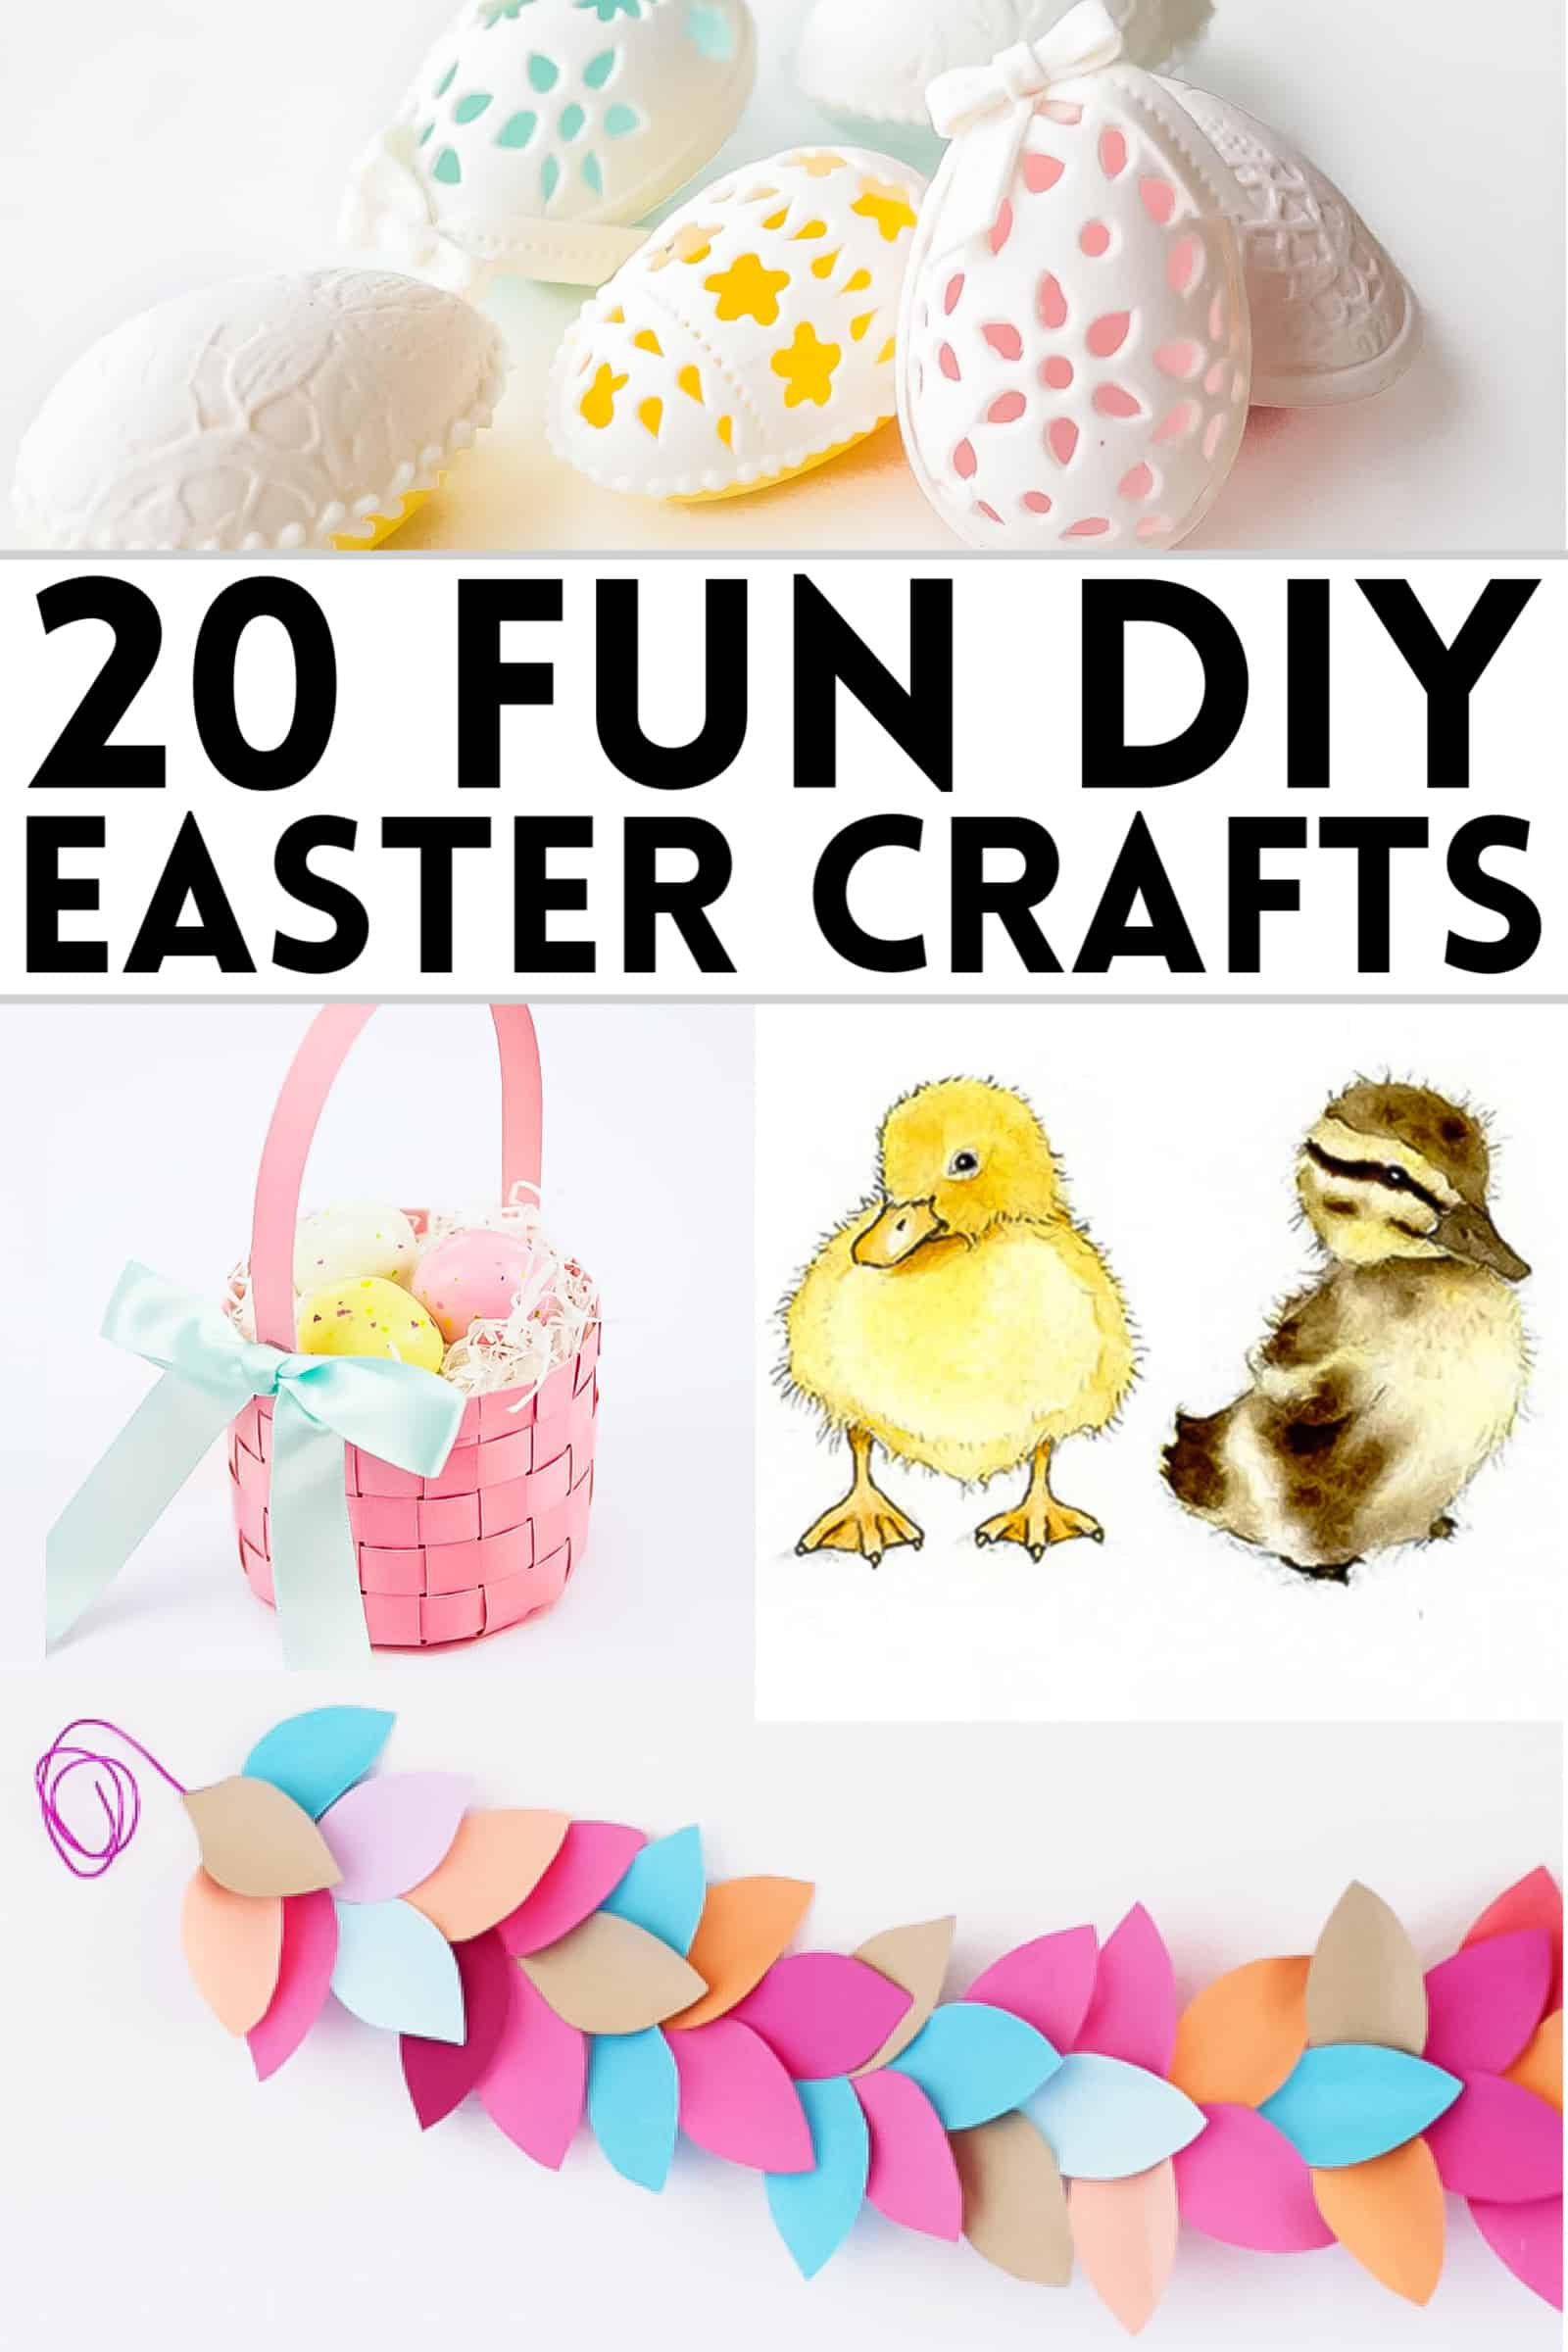 DIY Easter crafts for kids and adults with eggs, baskets, ducklings